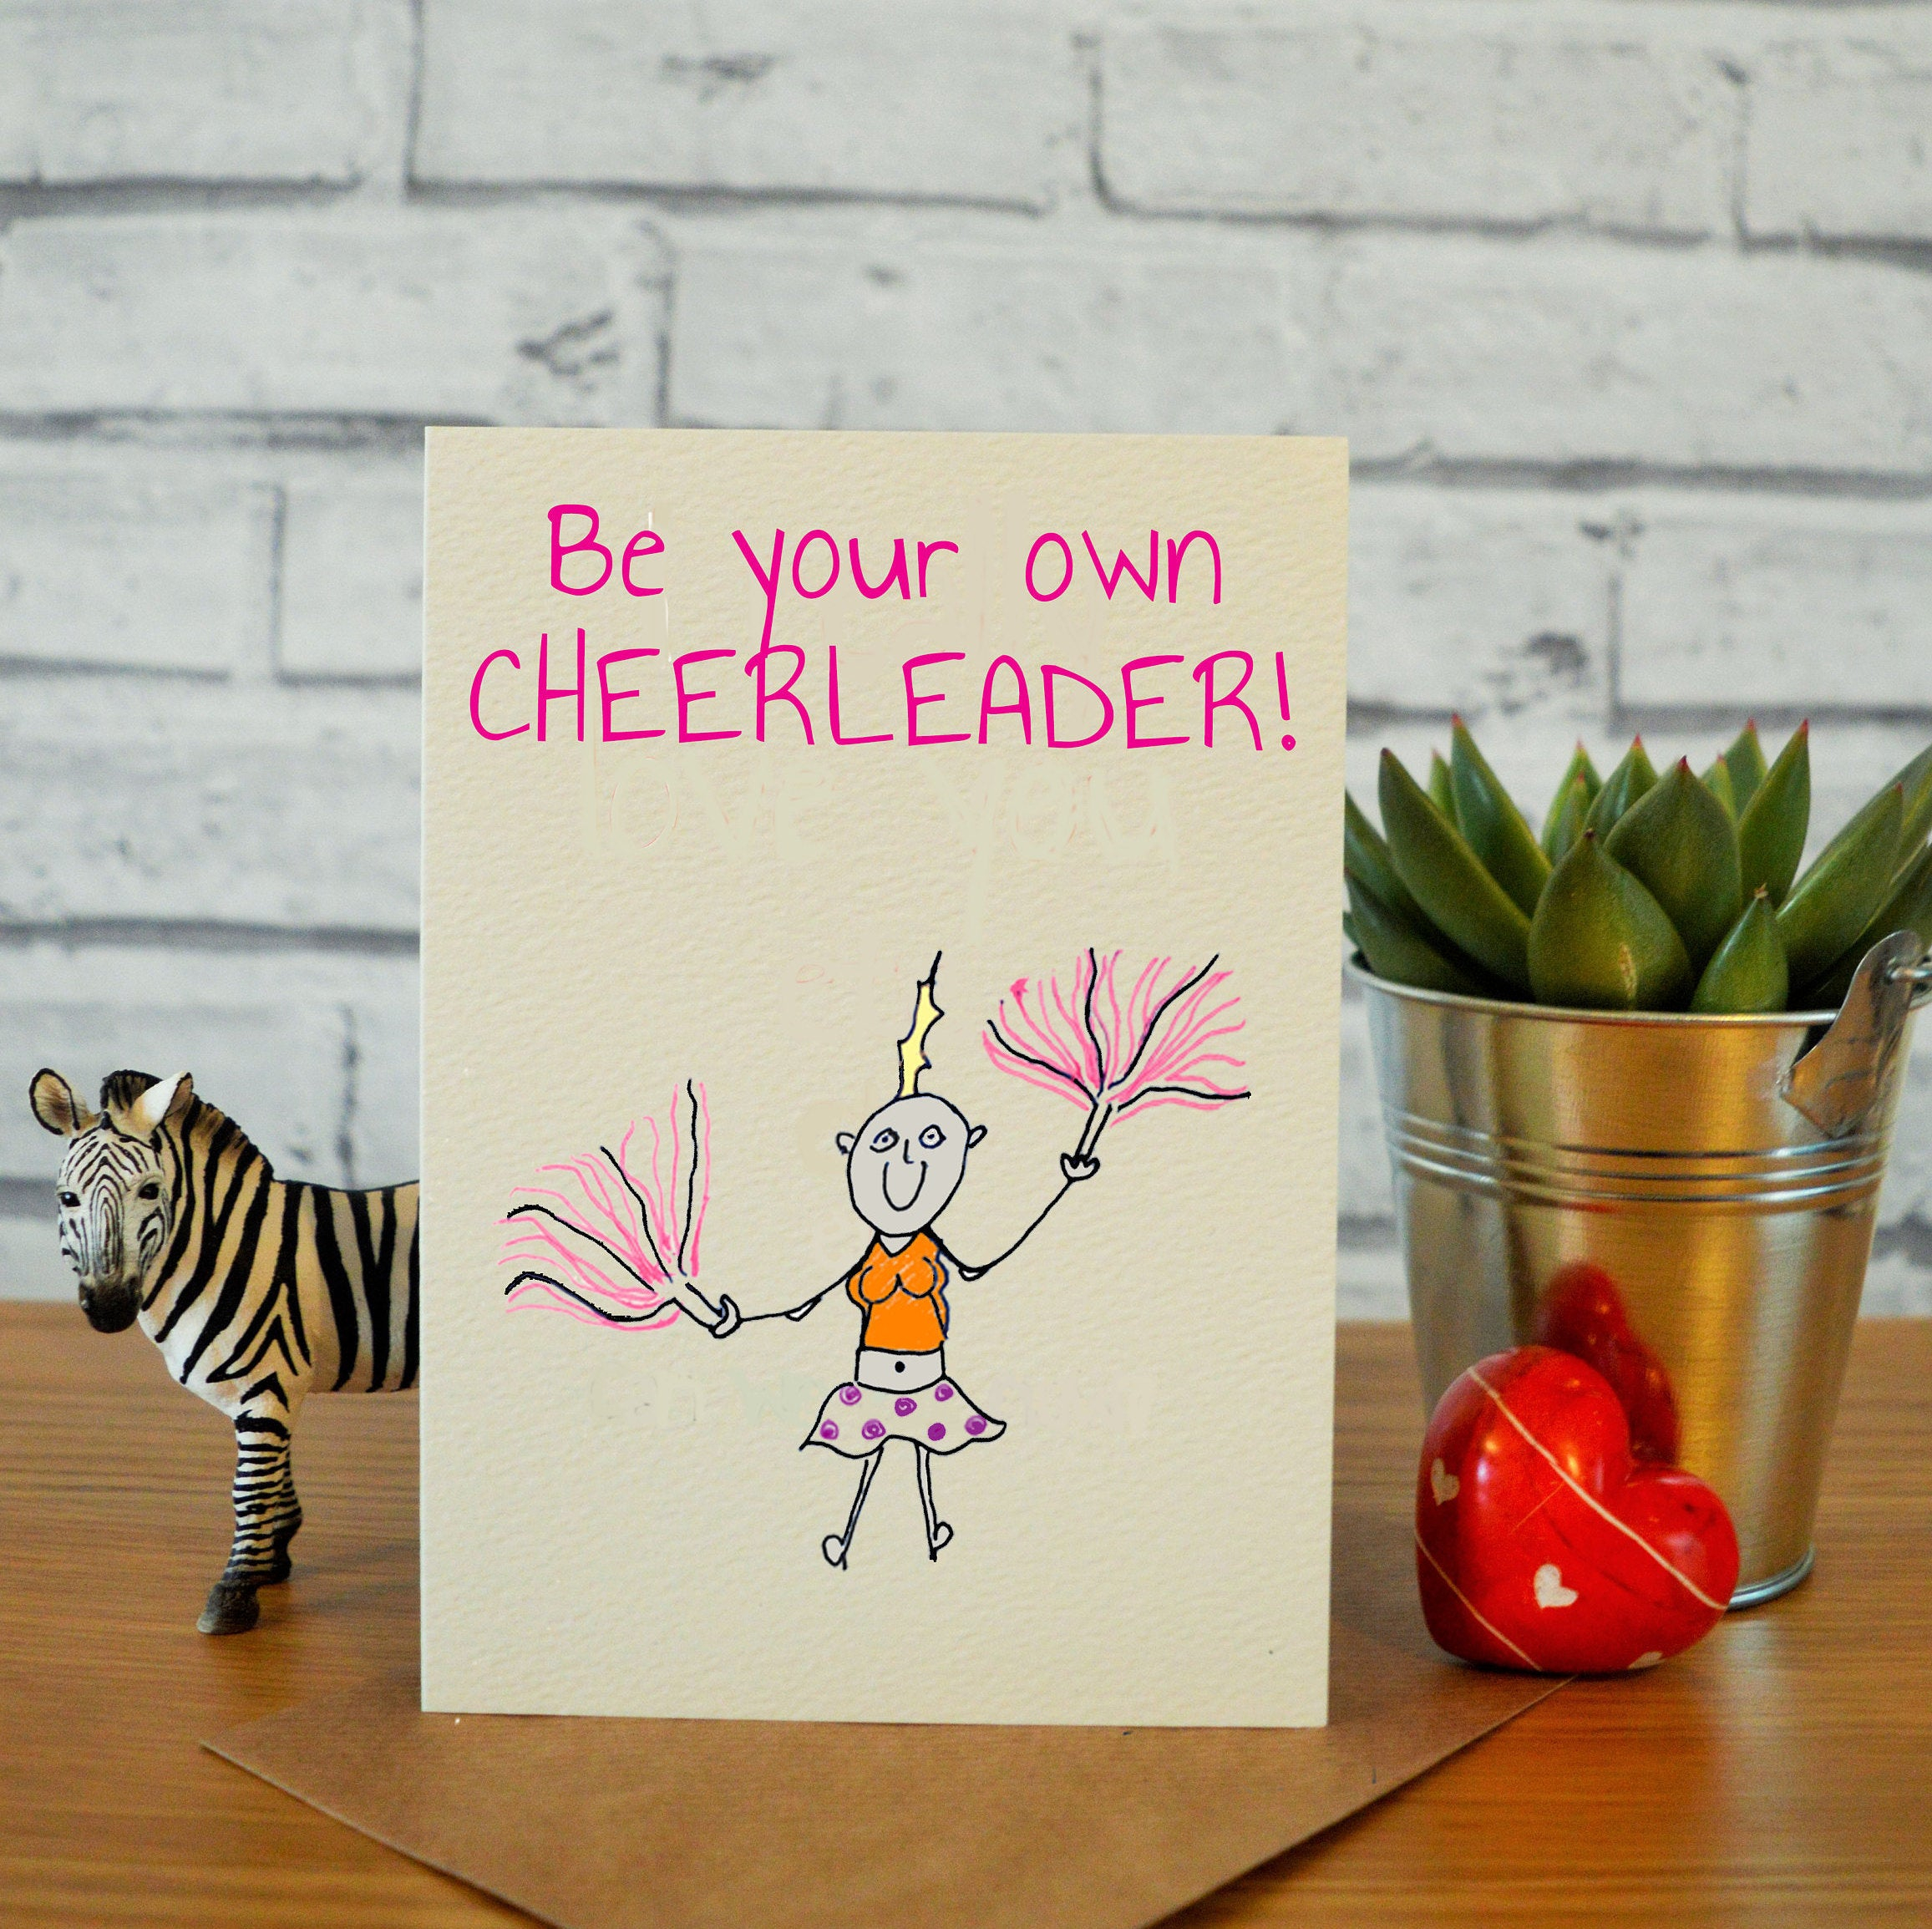 Card Making Ideas For Friends Birthday Best Friend Birthday Gift Birthday Cards Funny Birthday Cards Gift For Her Gifts For Her Good Luck Cards You Got This Cards